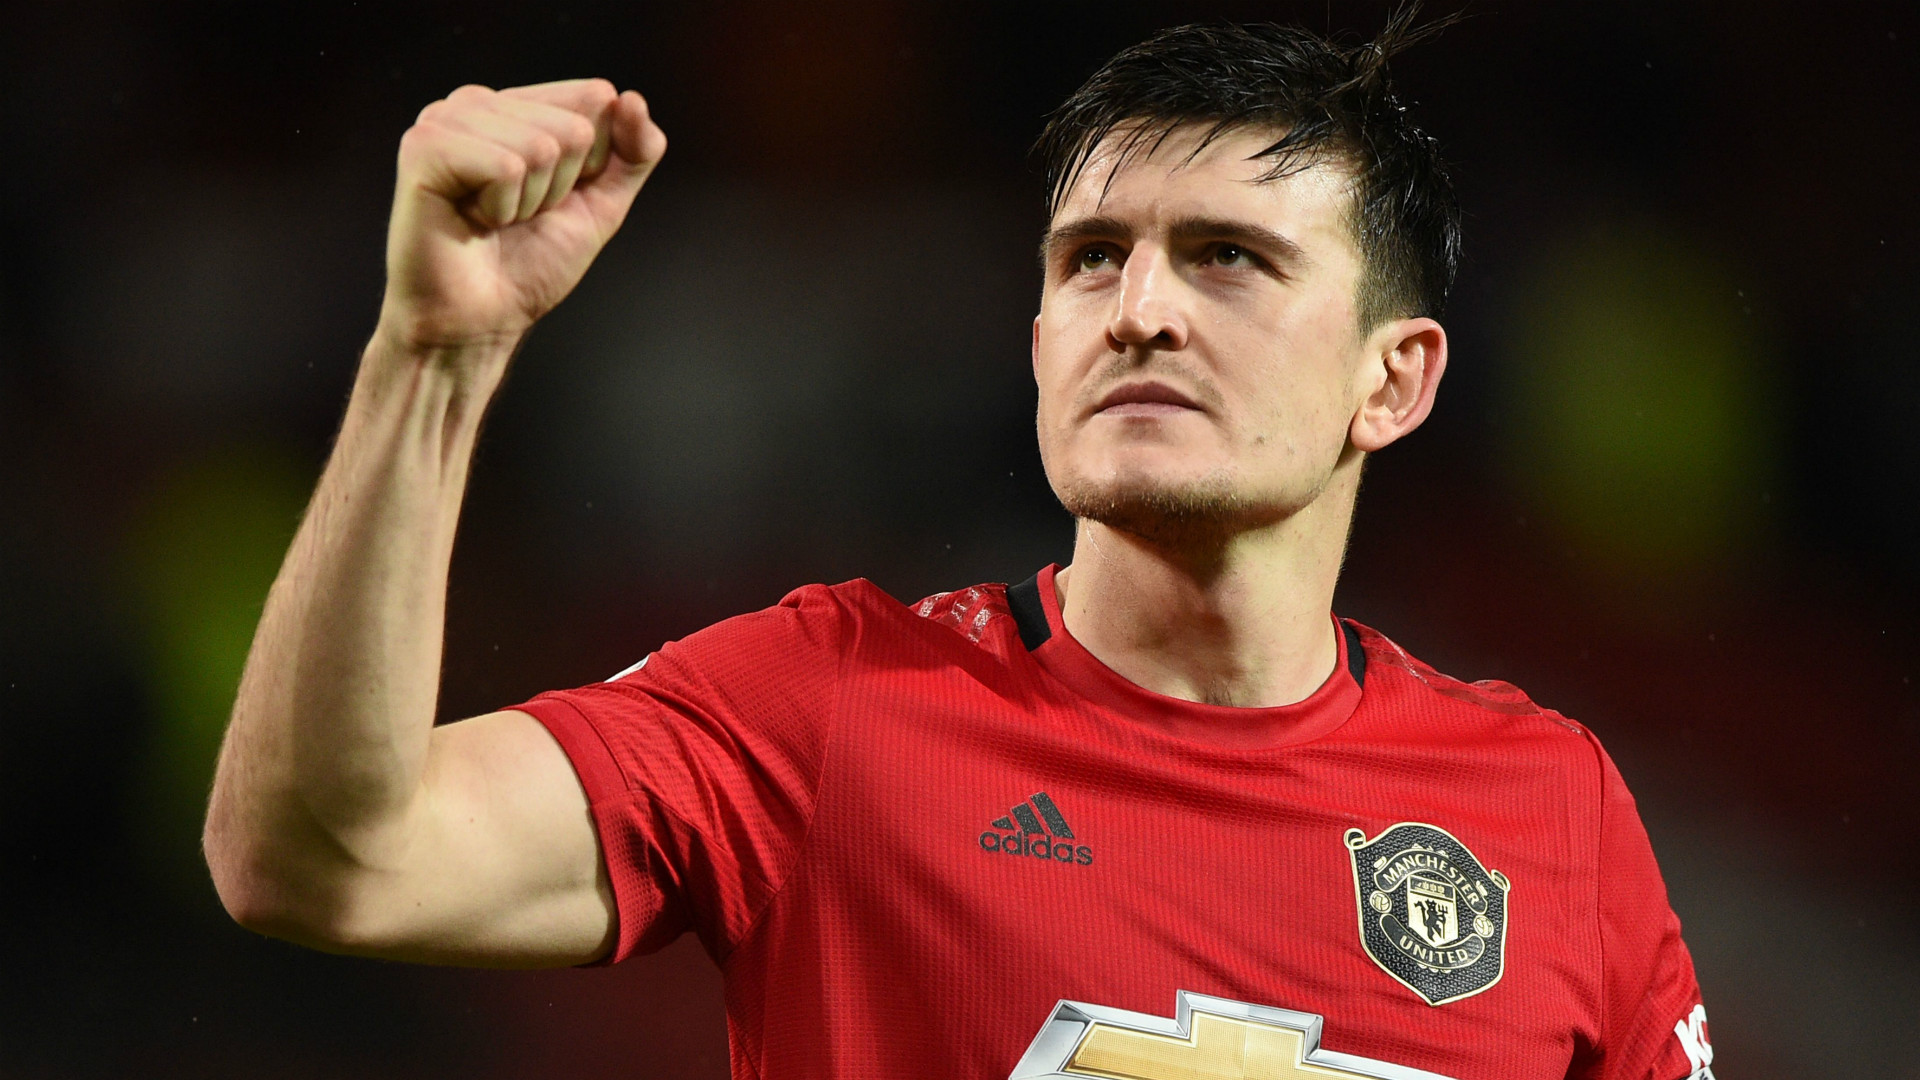 Man Utd star Harry Maguire gives verdict on Chelsea under Thomas Tuchel and explains mood - Bóng Đá